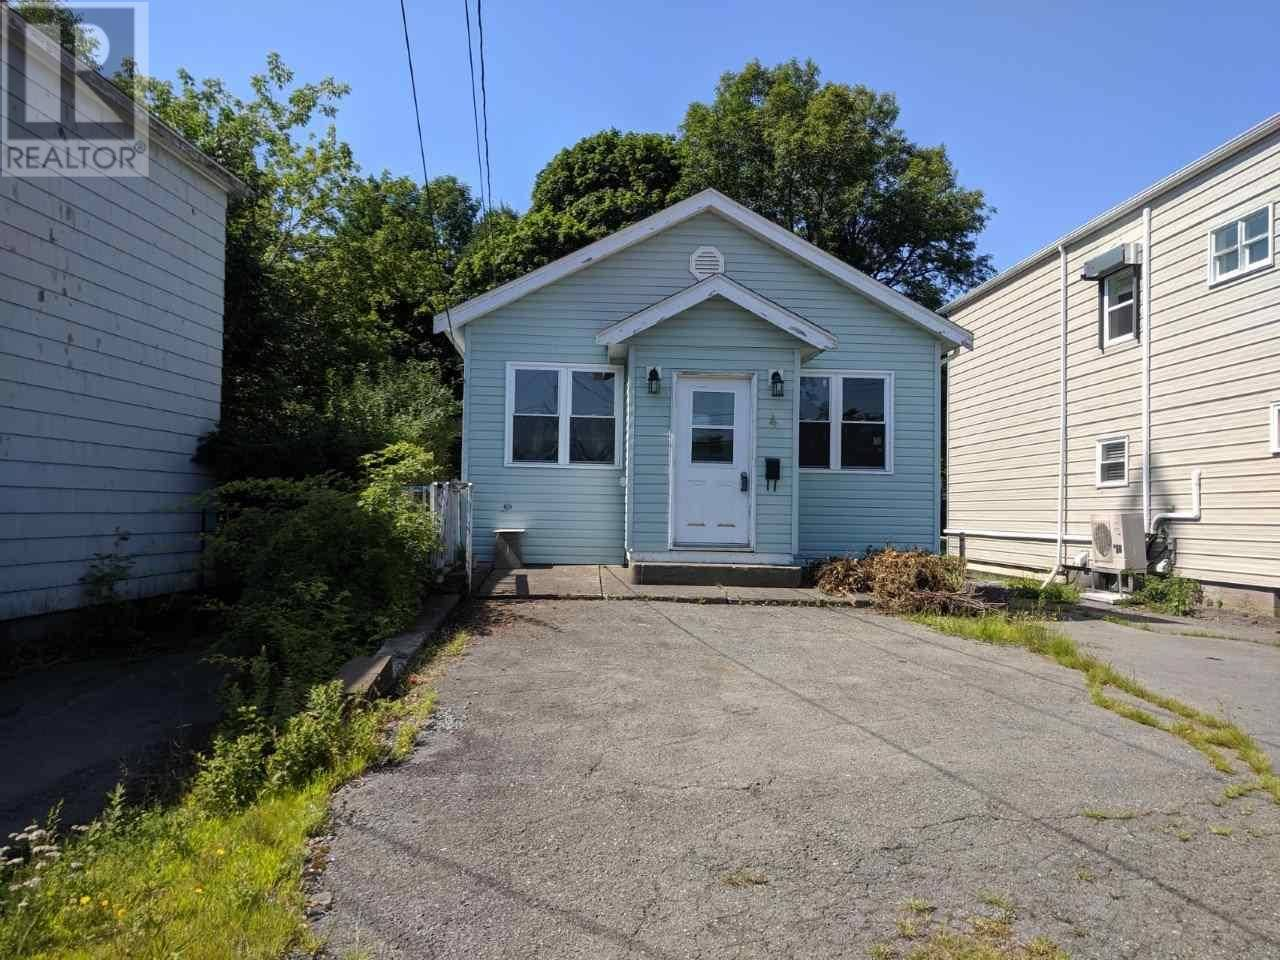 Residential property for sale at 4 Titus St Fairview Nova Scotia - MLS: 201920517